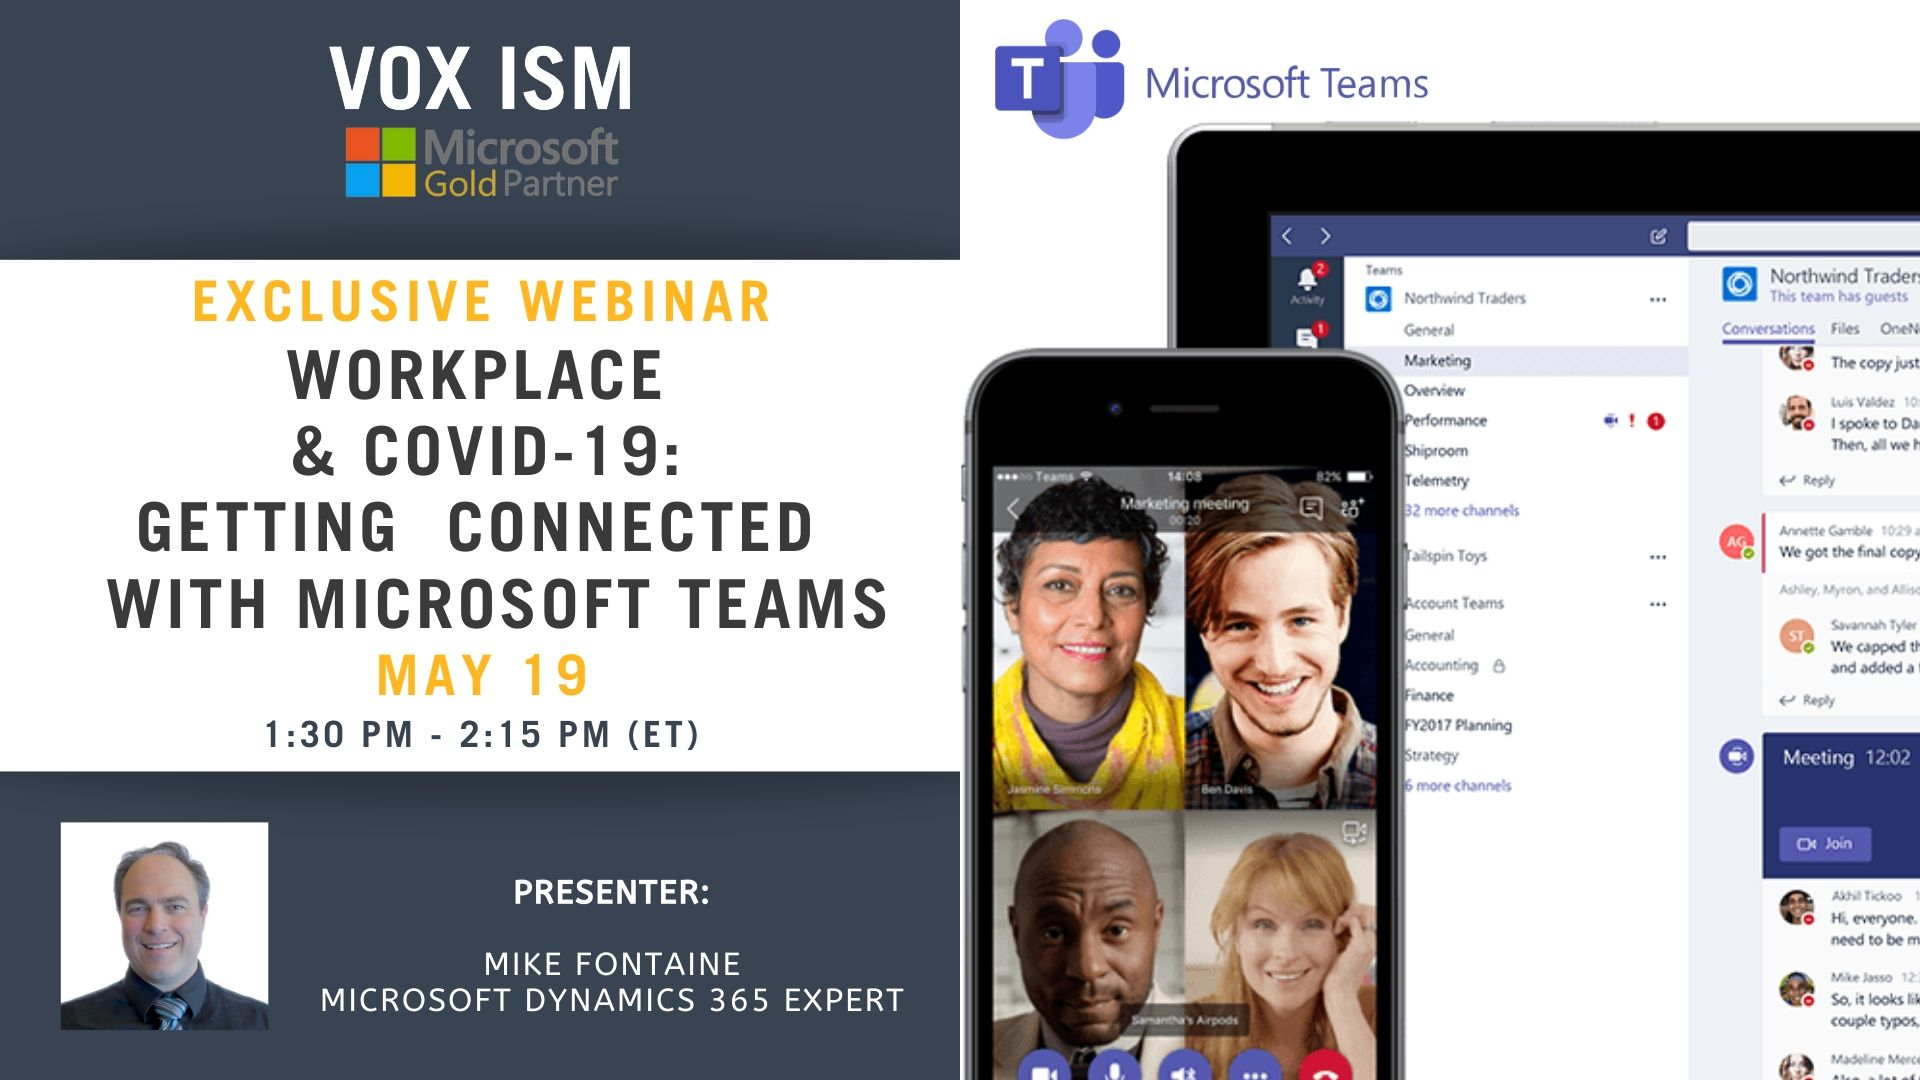 Workplace & COVID-19 - Getting Connected with Microsoft Teams - May 19 - Webinar VOX ISM